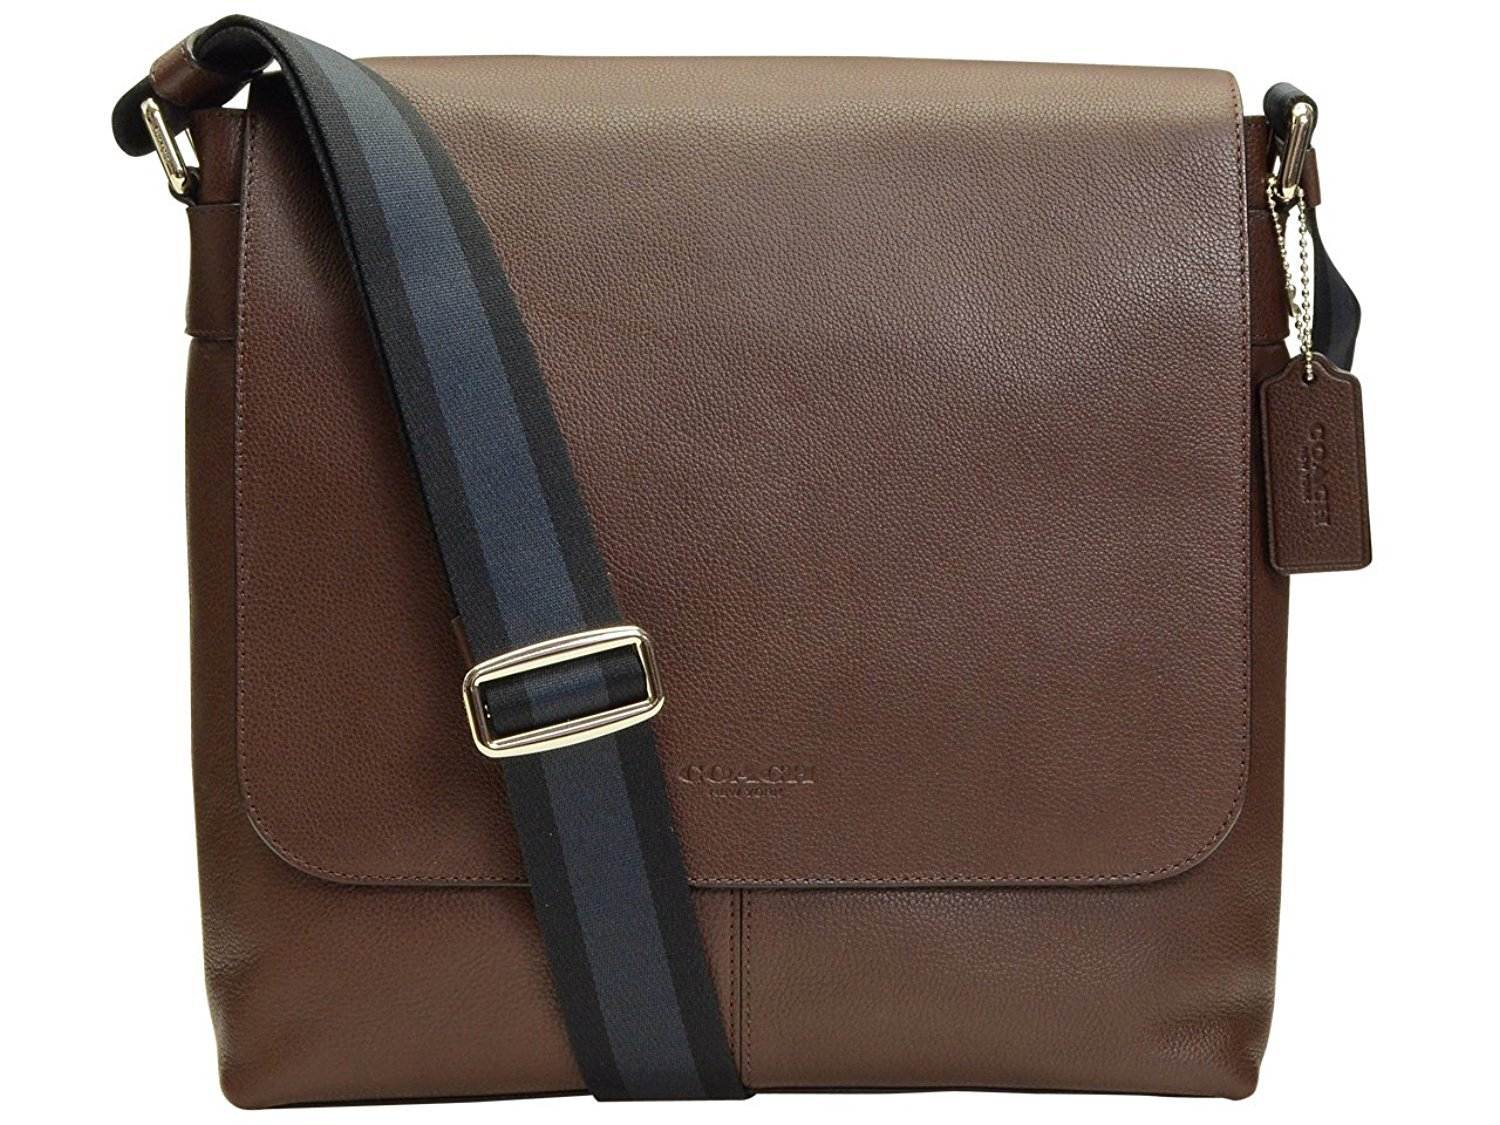 Coach coach men shoulder bag f72362 mah mahogany charless mousse leather small messenger